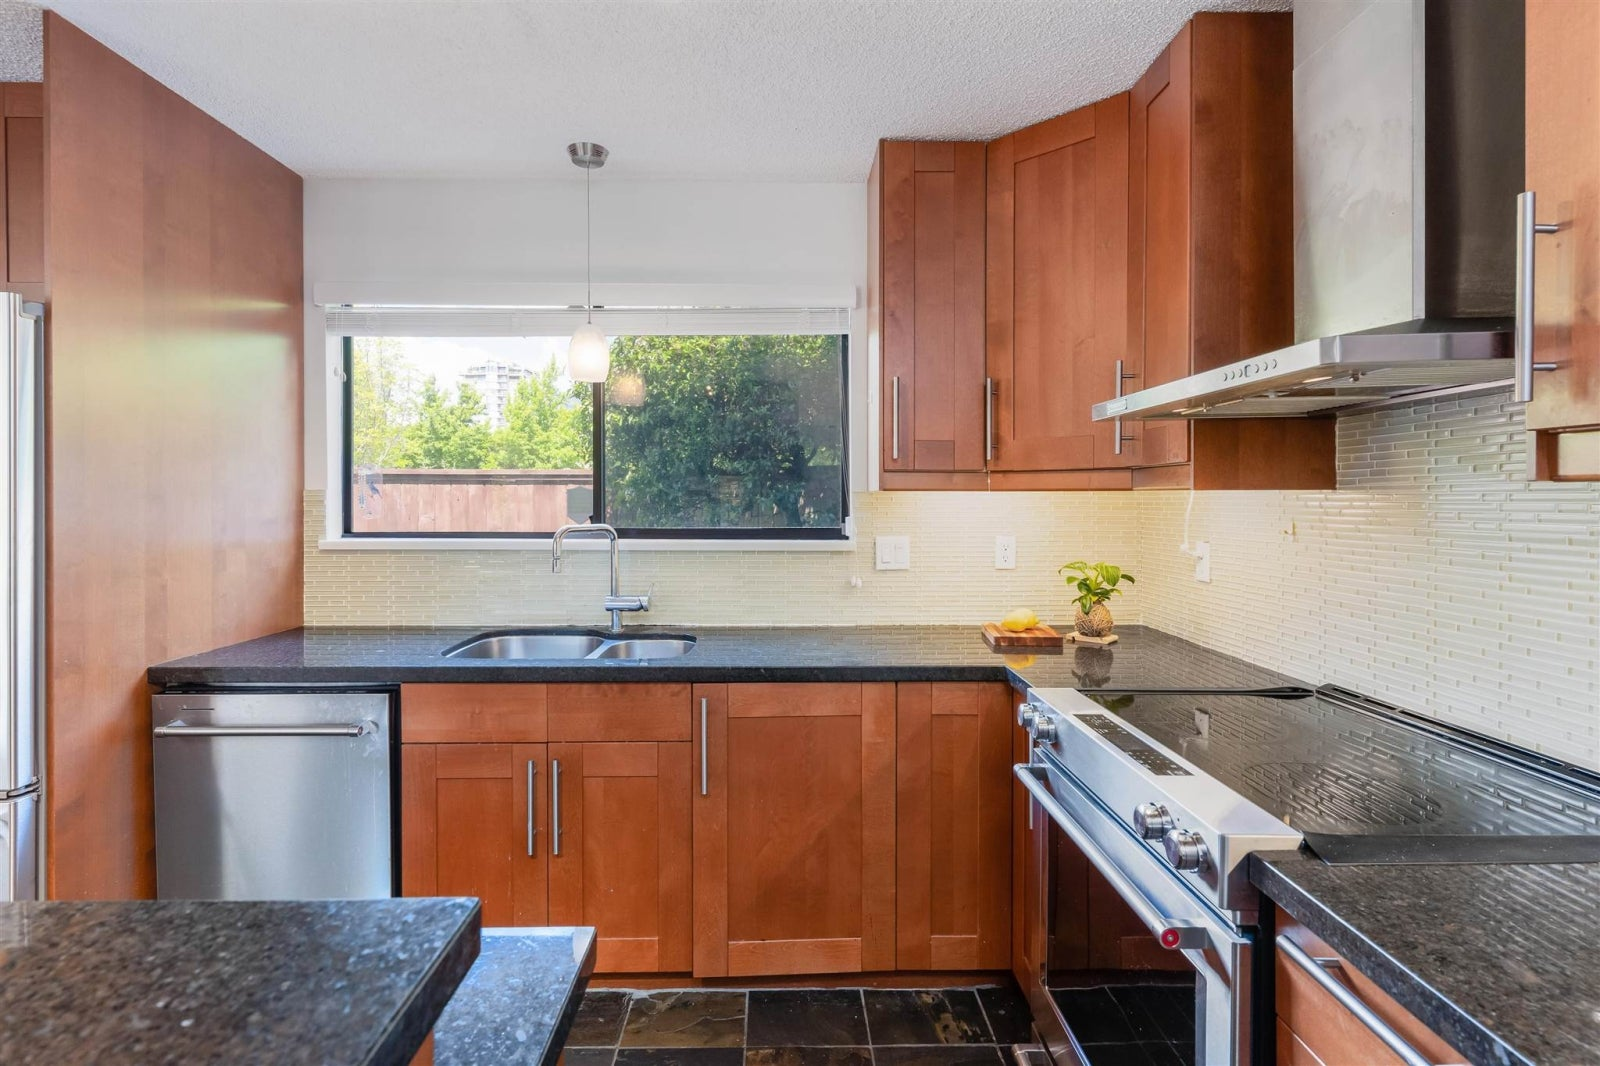 4 226 E 10TH STREET - Central Lonsdale Townhouse for sale, 3 Bedrooms (R2596161) #11